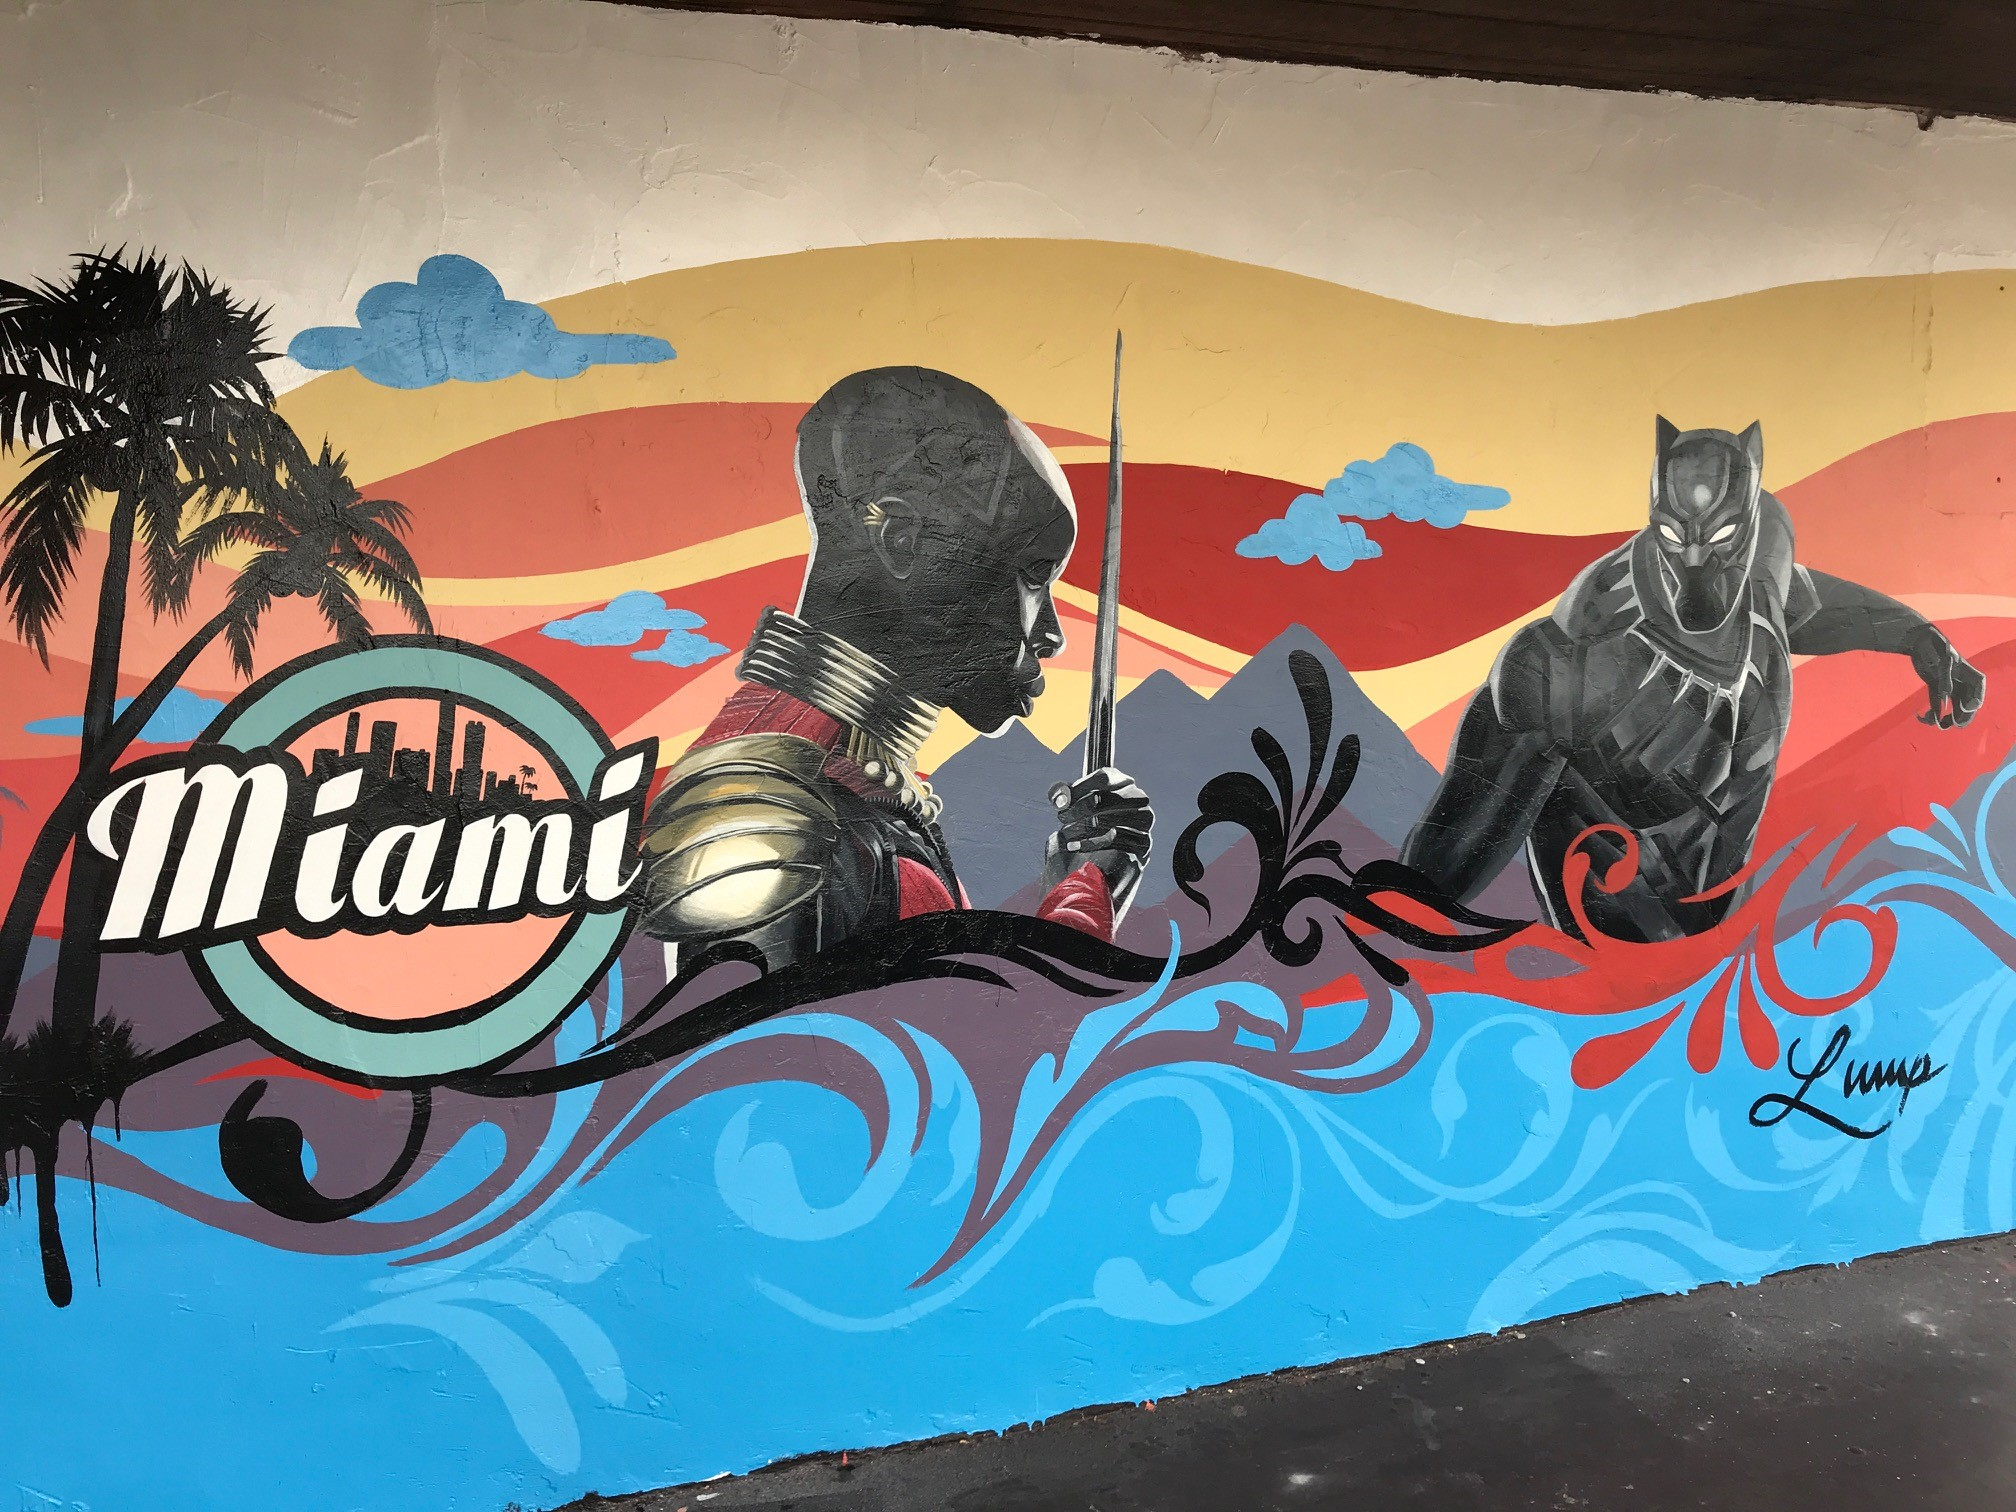 Black panther movie painting on exterior wall